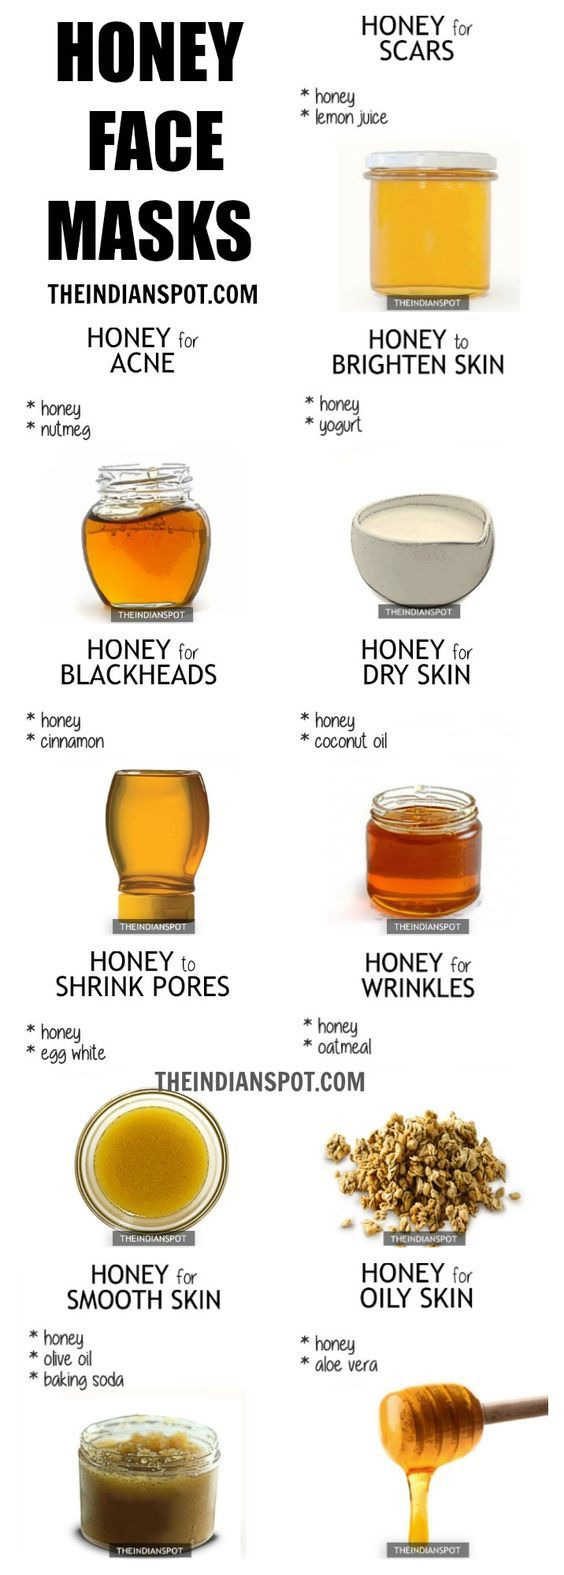 Honey Face Masks | DIY Beauty Tips | Self-Care Inspiration